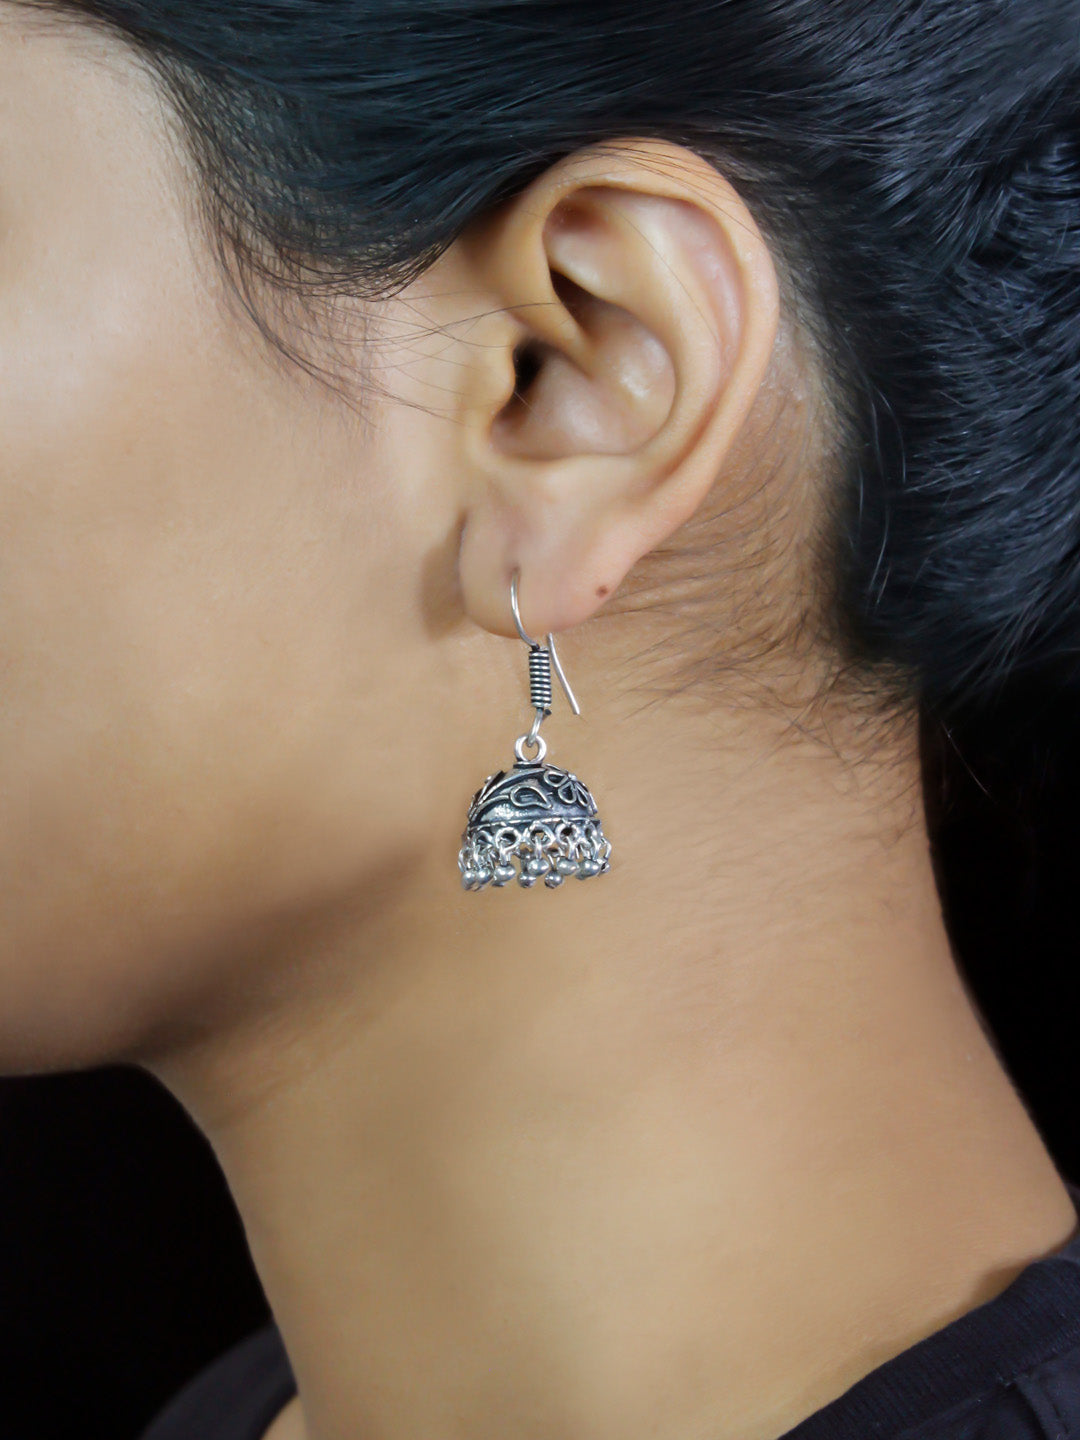 Oxidised Floral Design Small Jhumka Earring-OXIDIZED-Earring